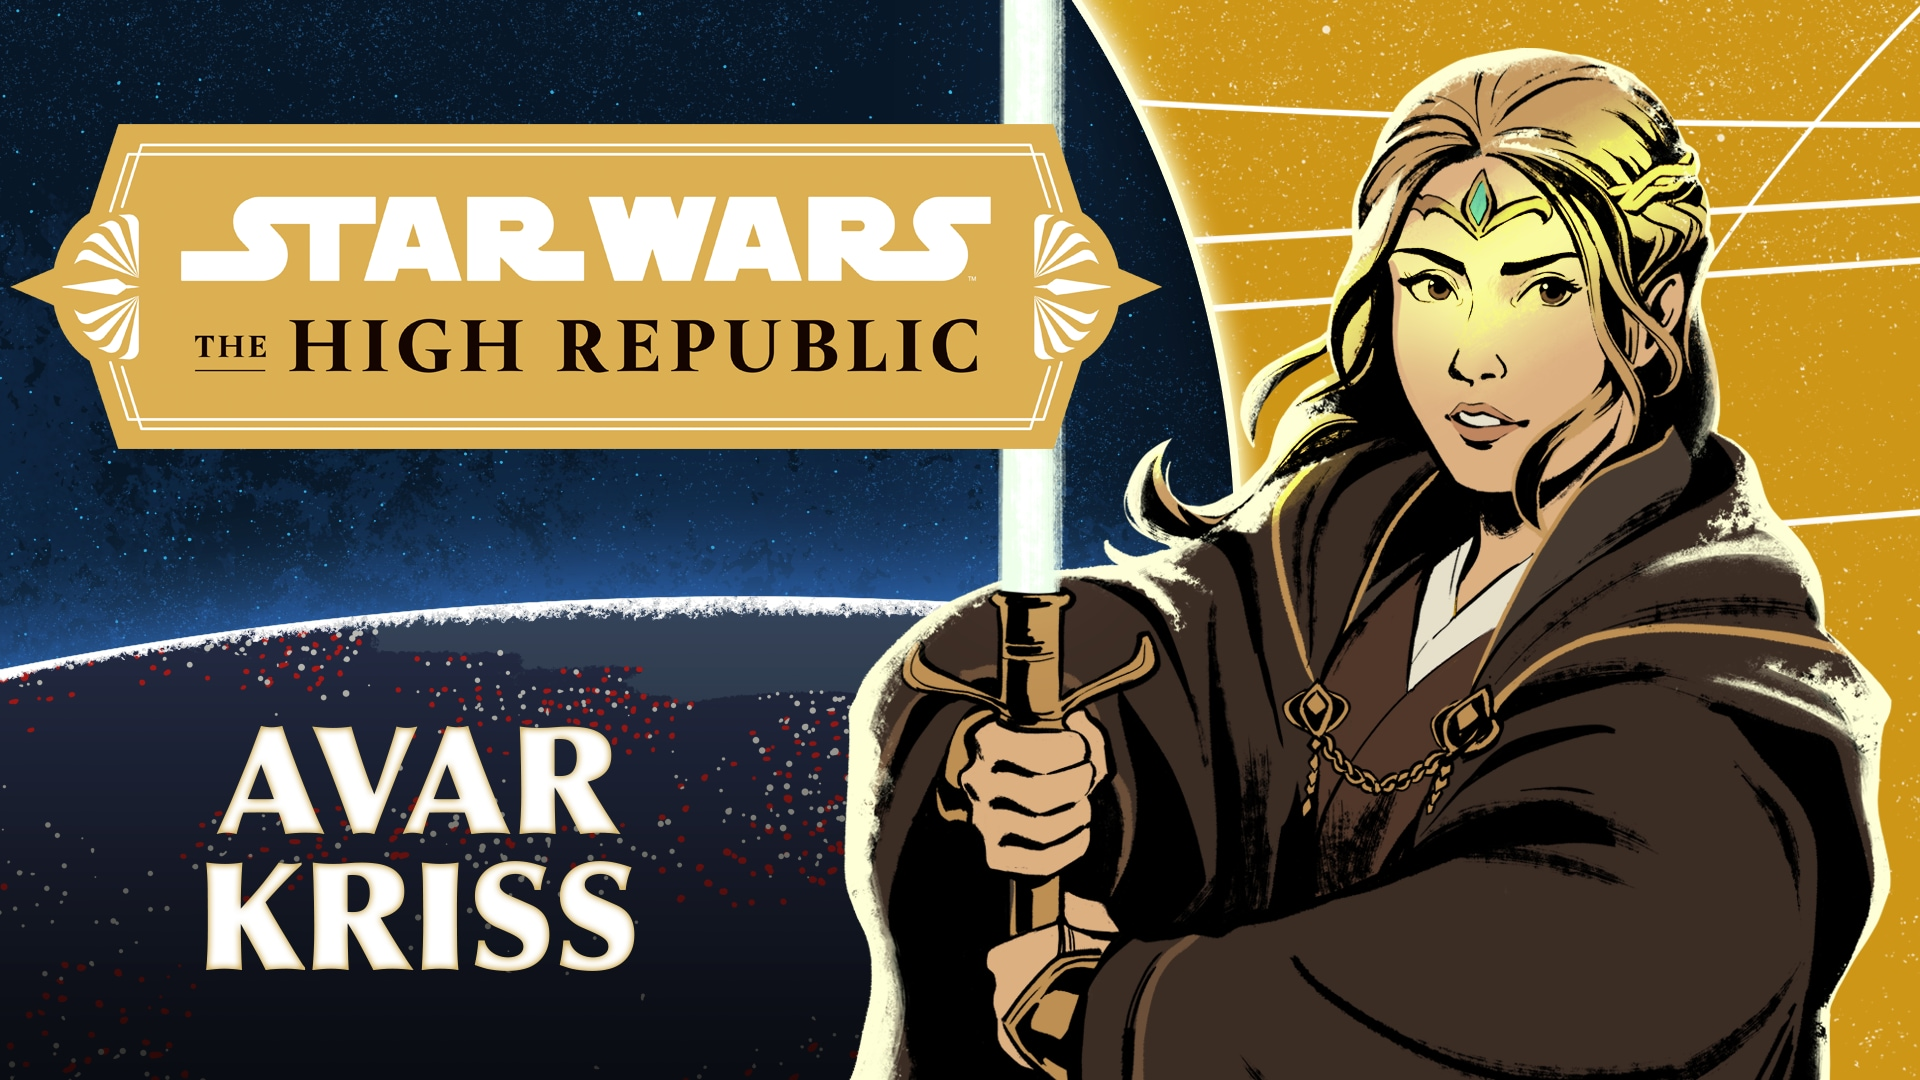 Avar Kriss | Characters of Star Wars: The High Republic